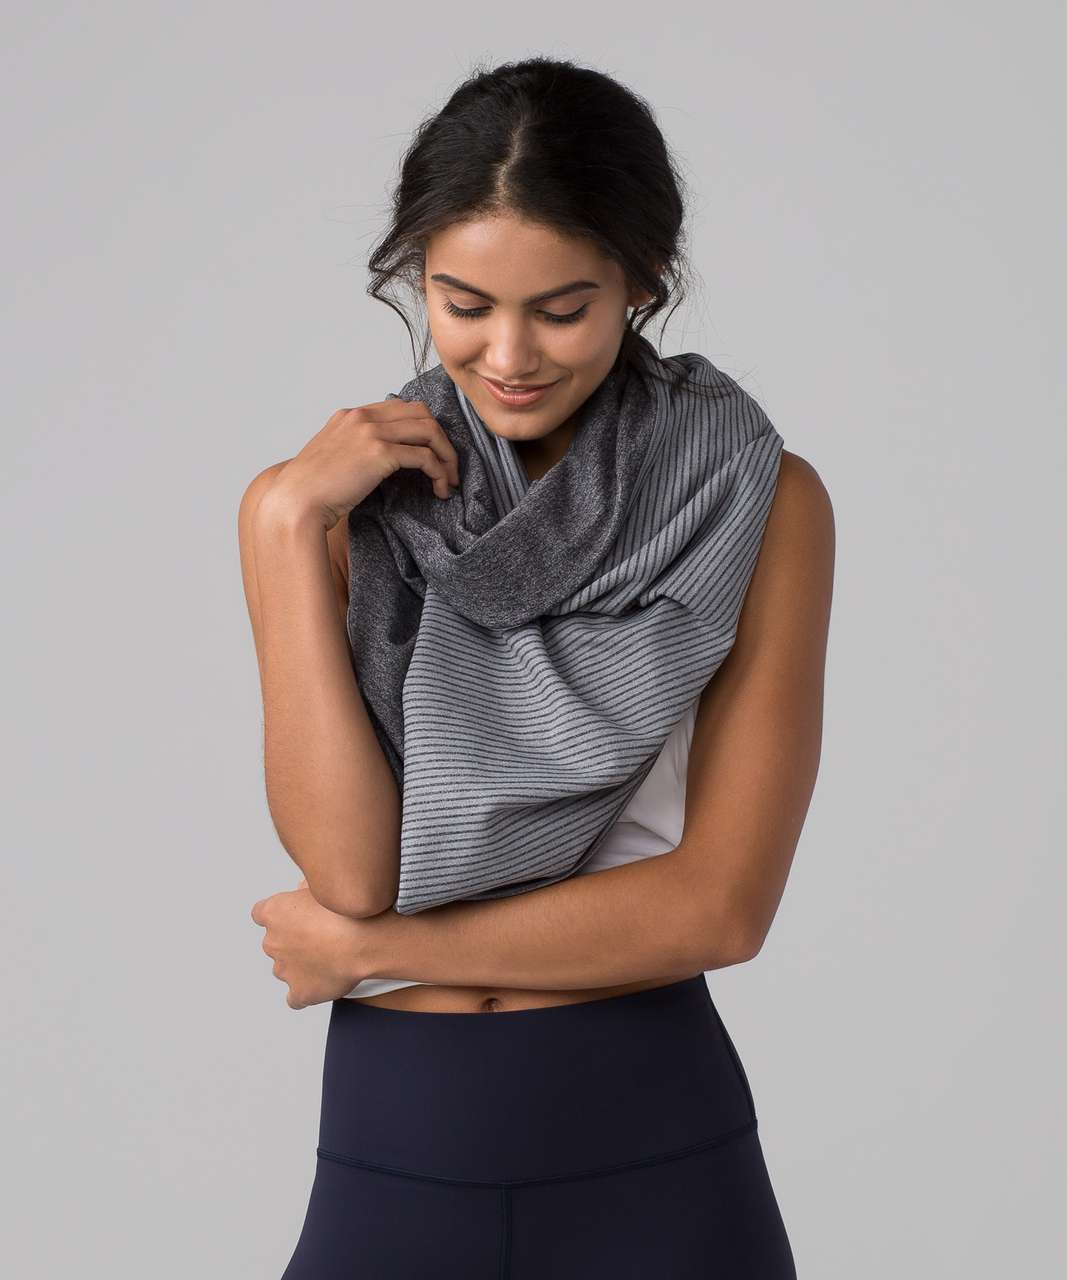 Lululemon Vinyasa Scarf *Rulu - Hyper Stripe Heathered Battleship Heathered Black / Heathered Black